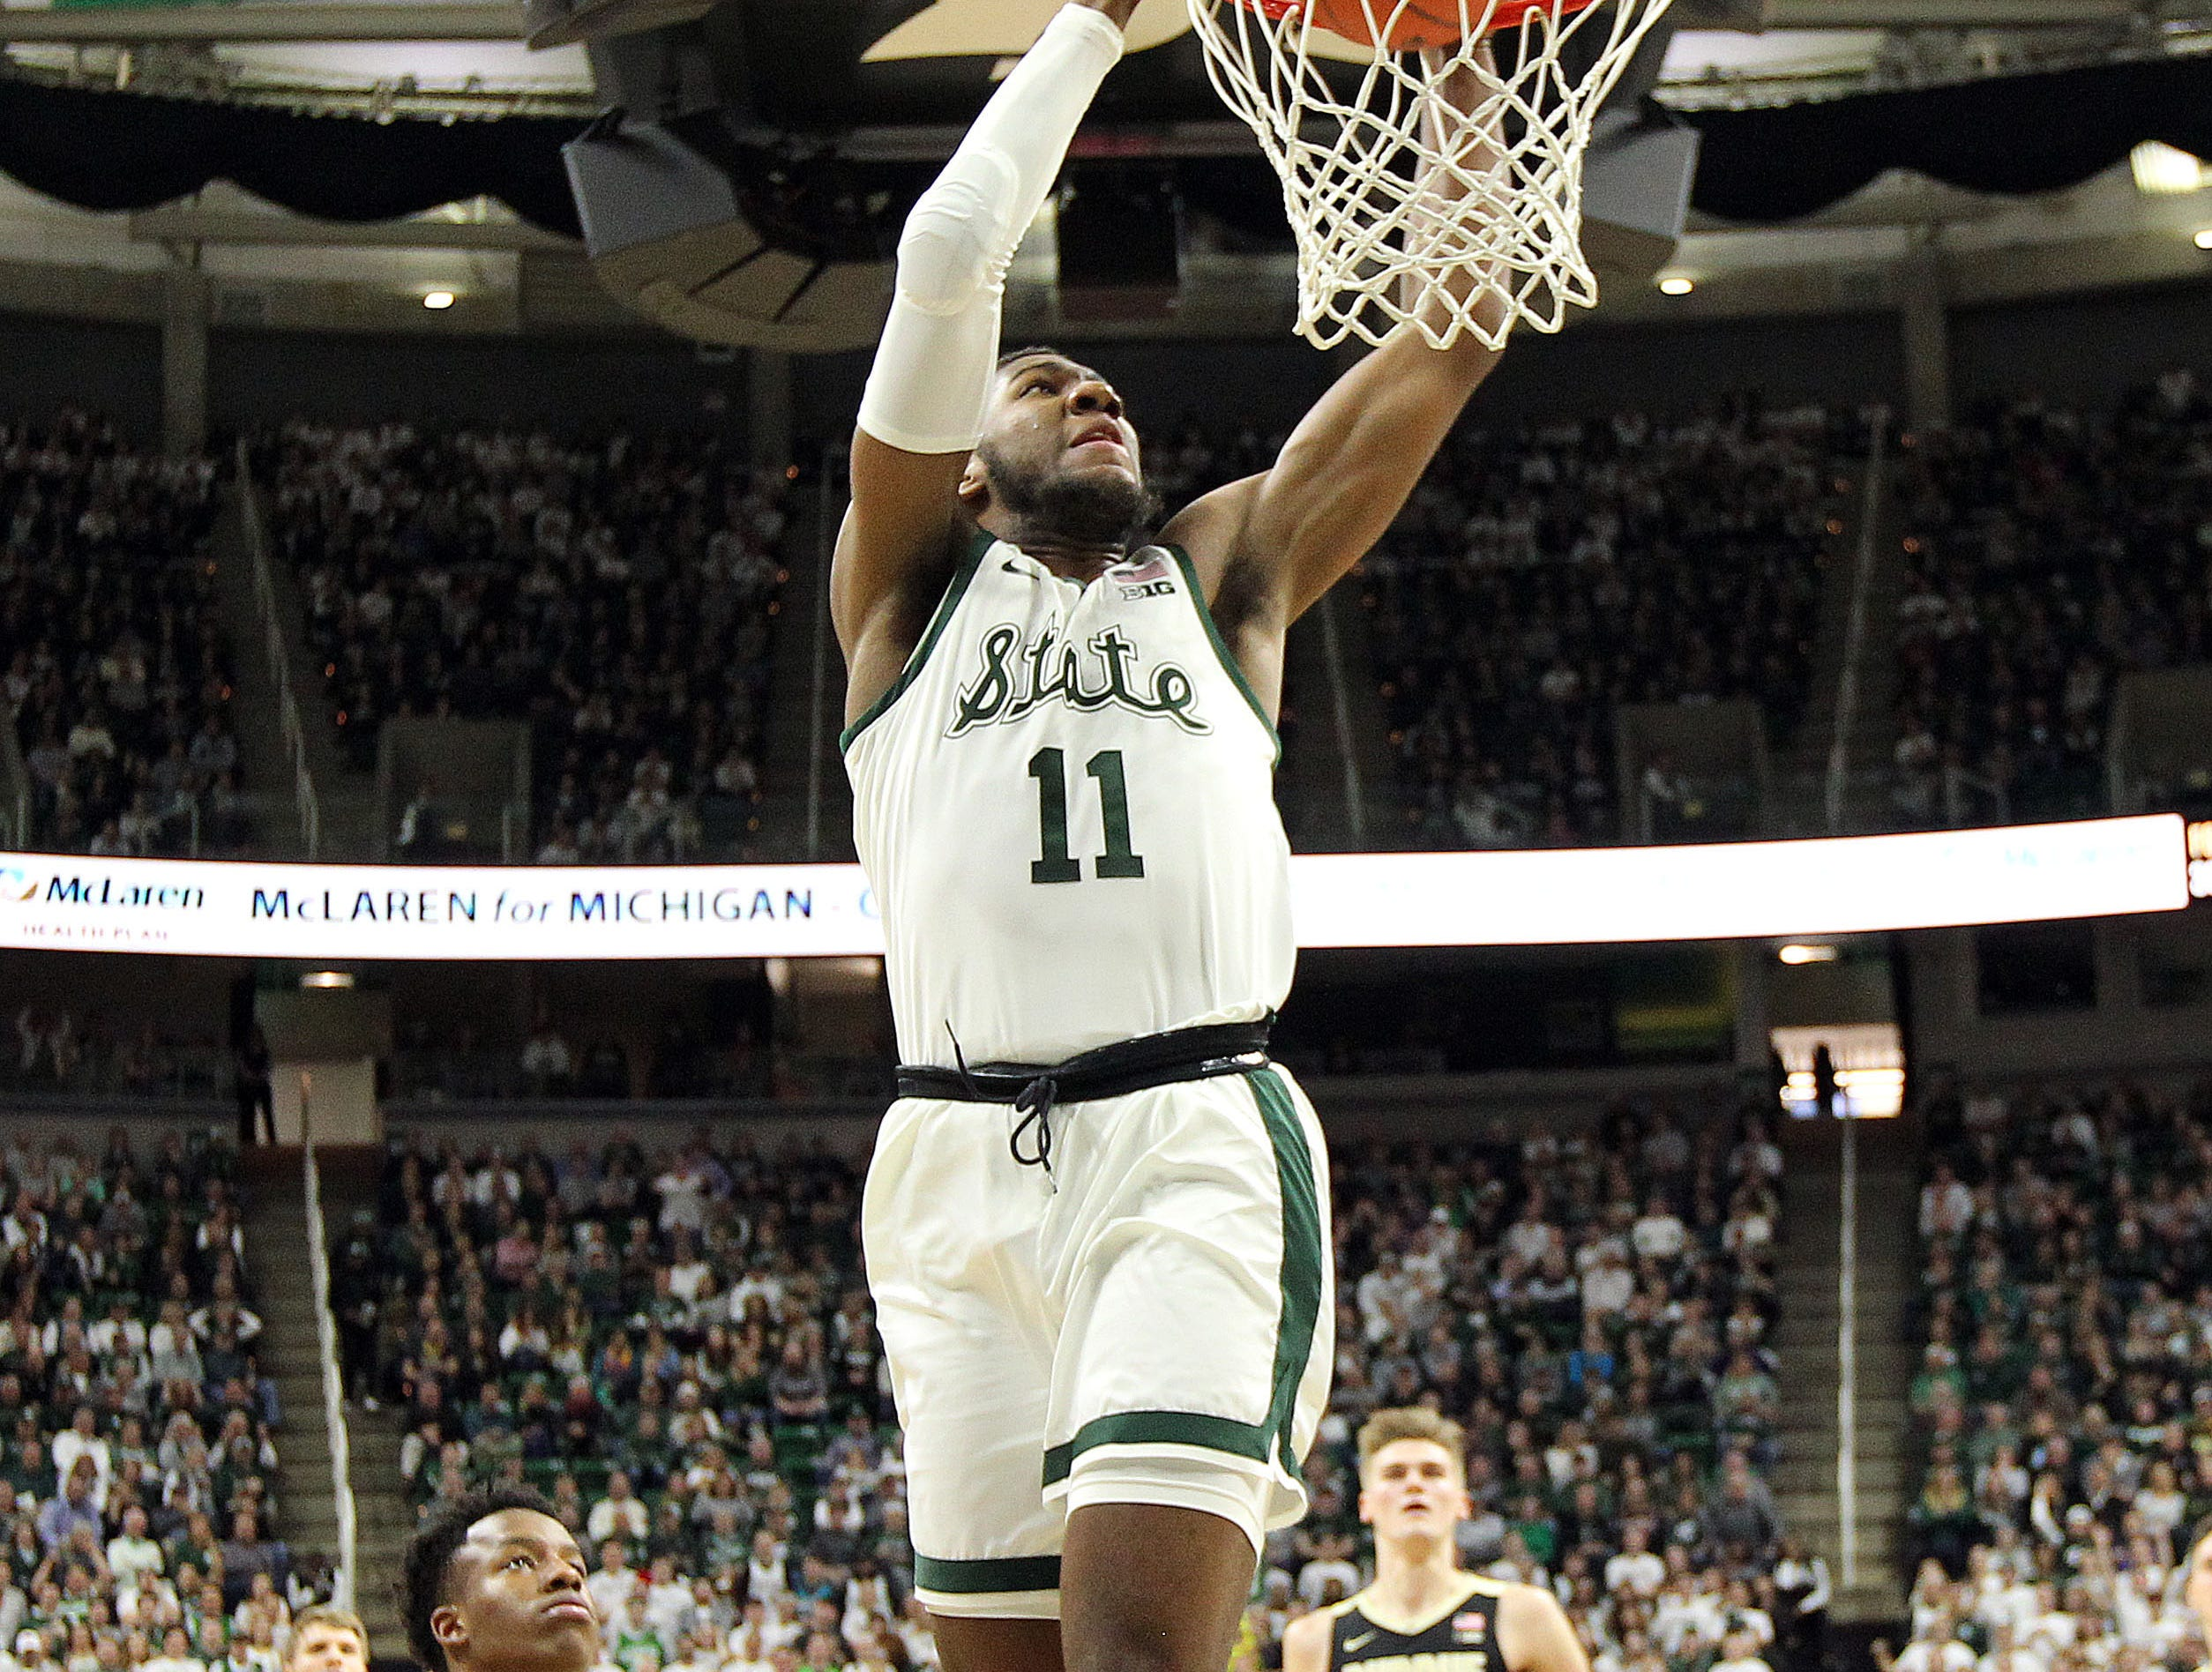 Jan 8, 2019; East Lansing, MI, USA; Michigan State Spartans forward Aaron Henry (11) dunks the ball during the first half against the Purdue Boilermakers at the Breslin Center. Mandatory Credit: Mike Carter-USA TODAY Sports